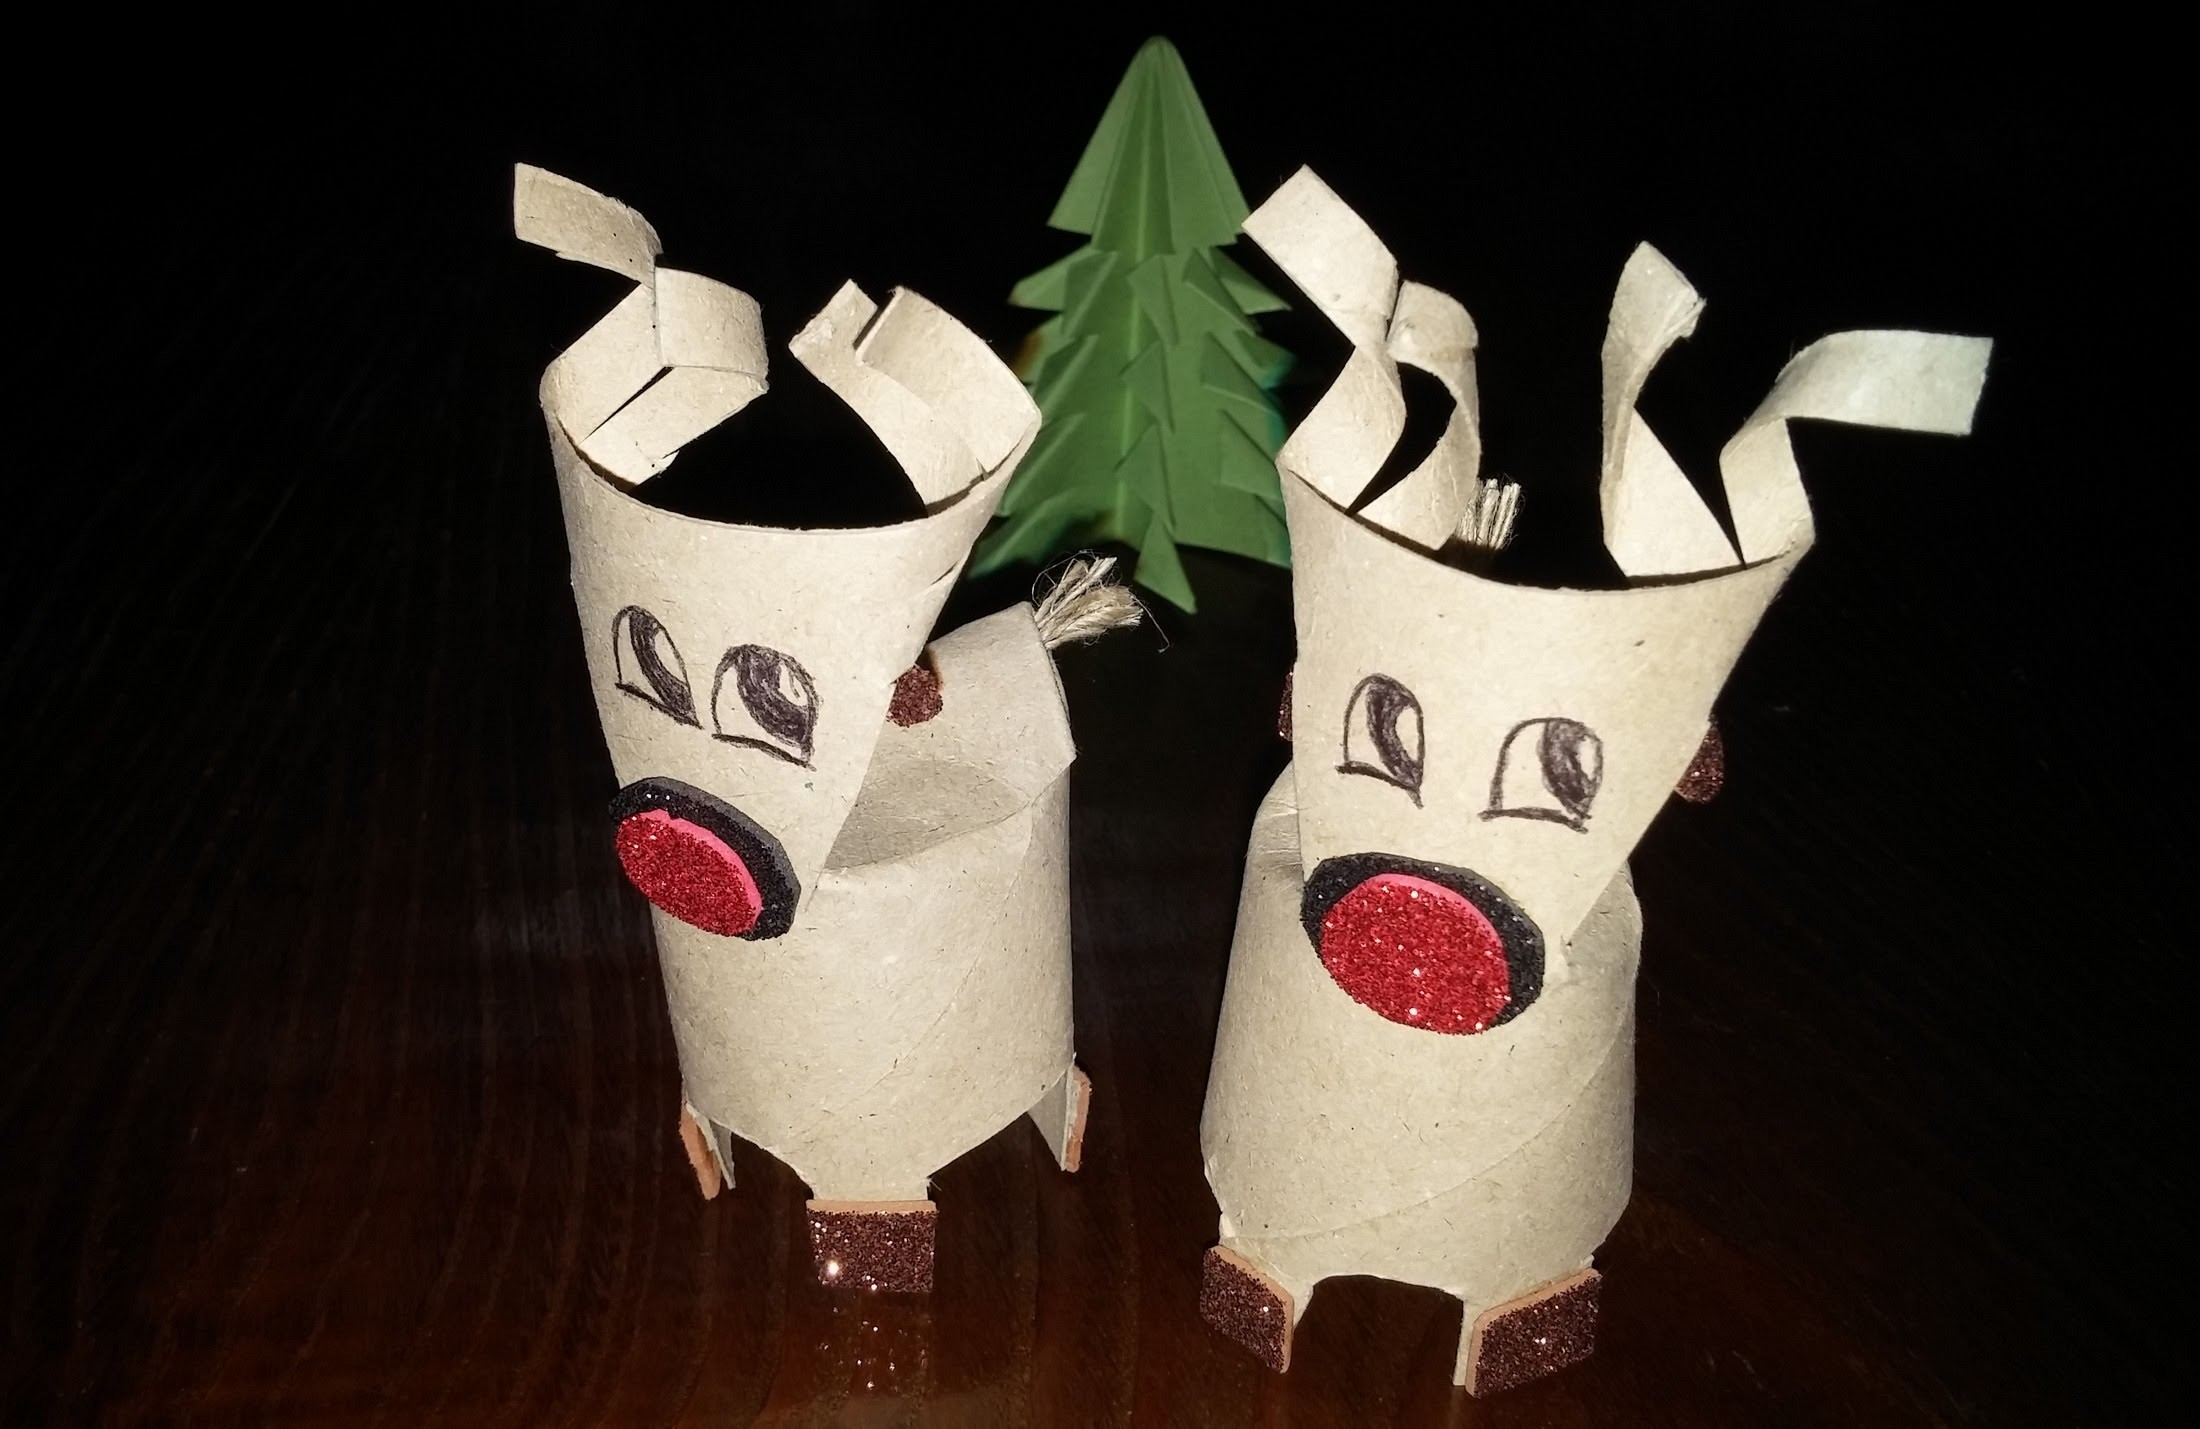 Como fazer rena de Natal - DIY - How to make a Christmas reindeer